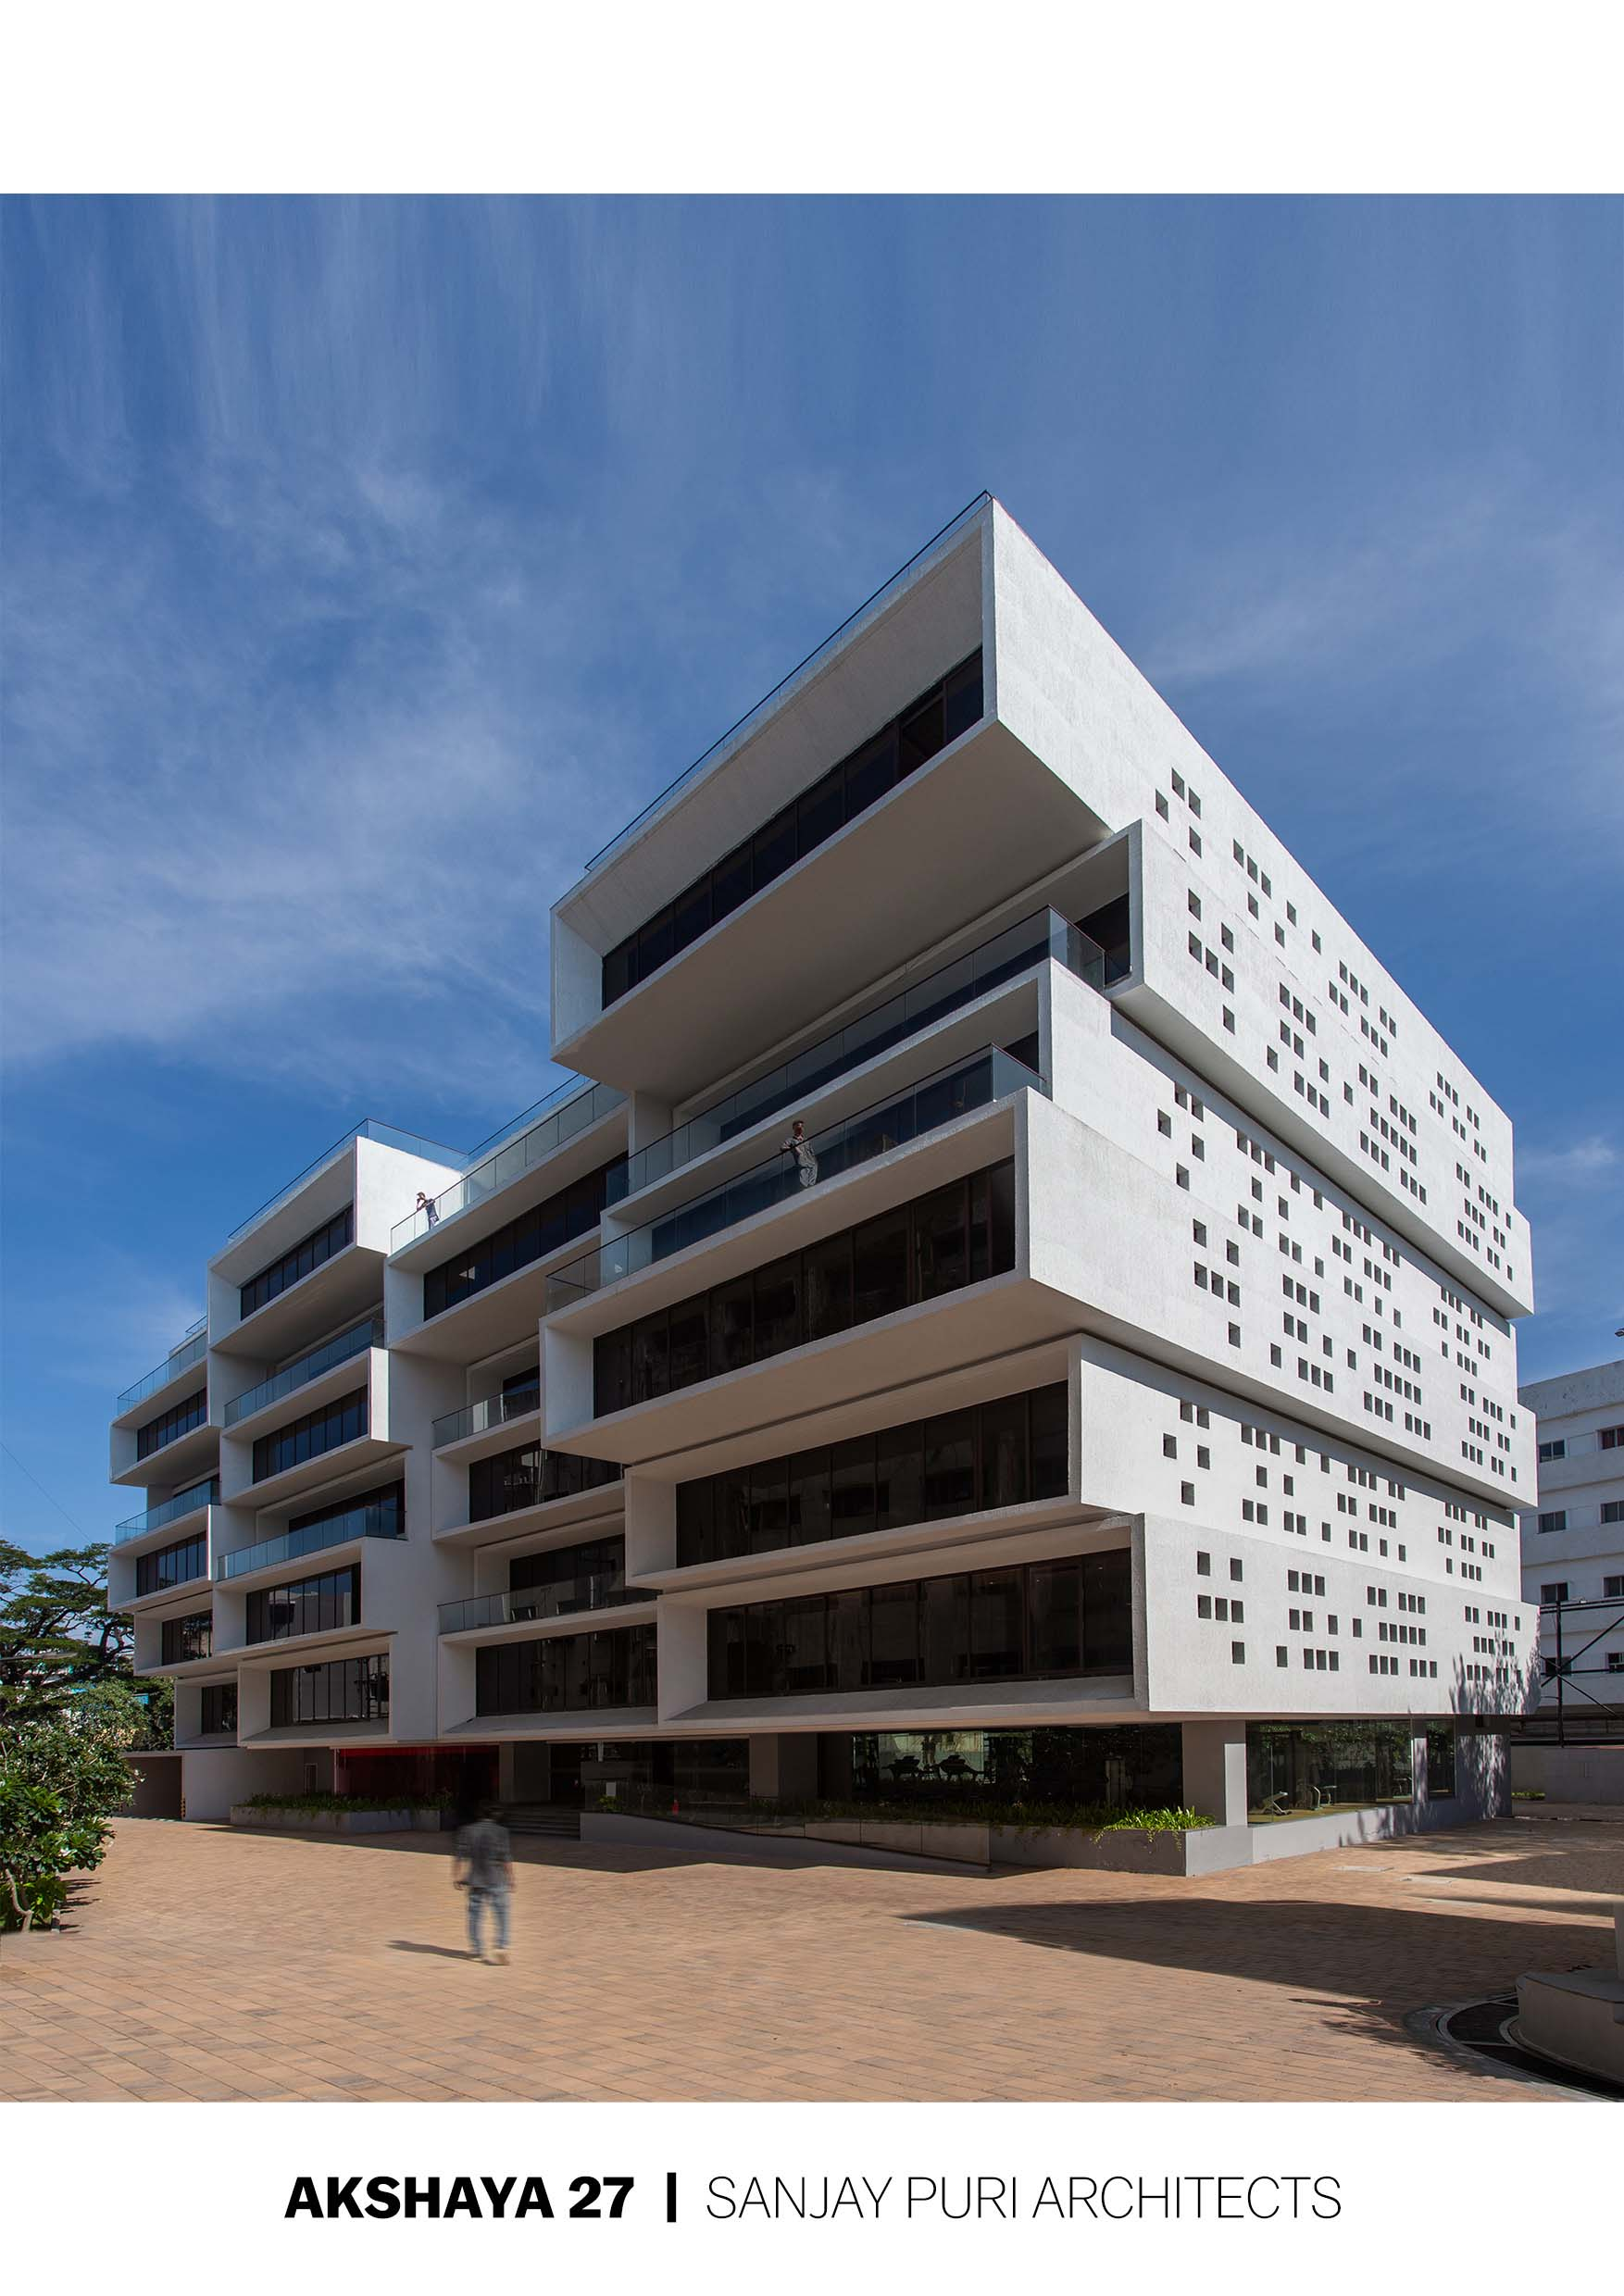 Cuboid cantilevered volumes create an office building with outdoor spaces at each level BRS Sreenag, Sreenag Pictures